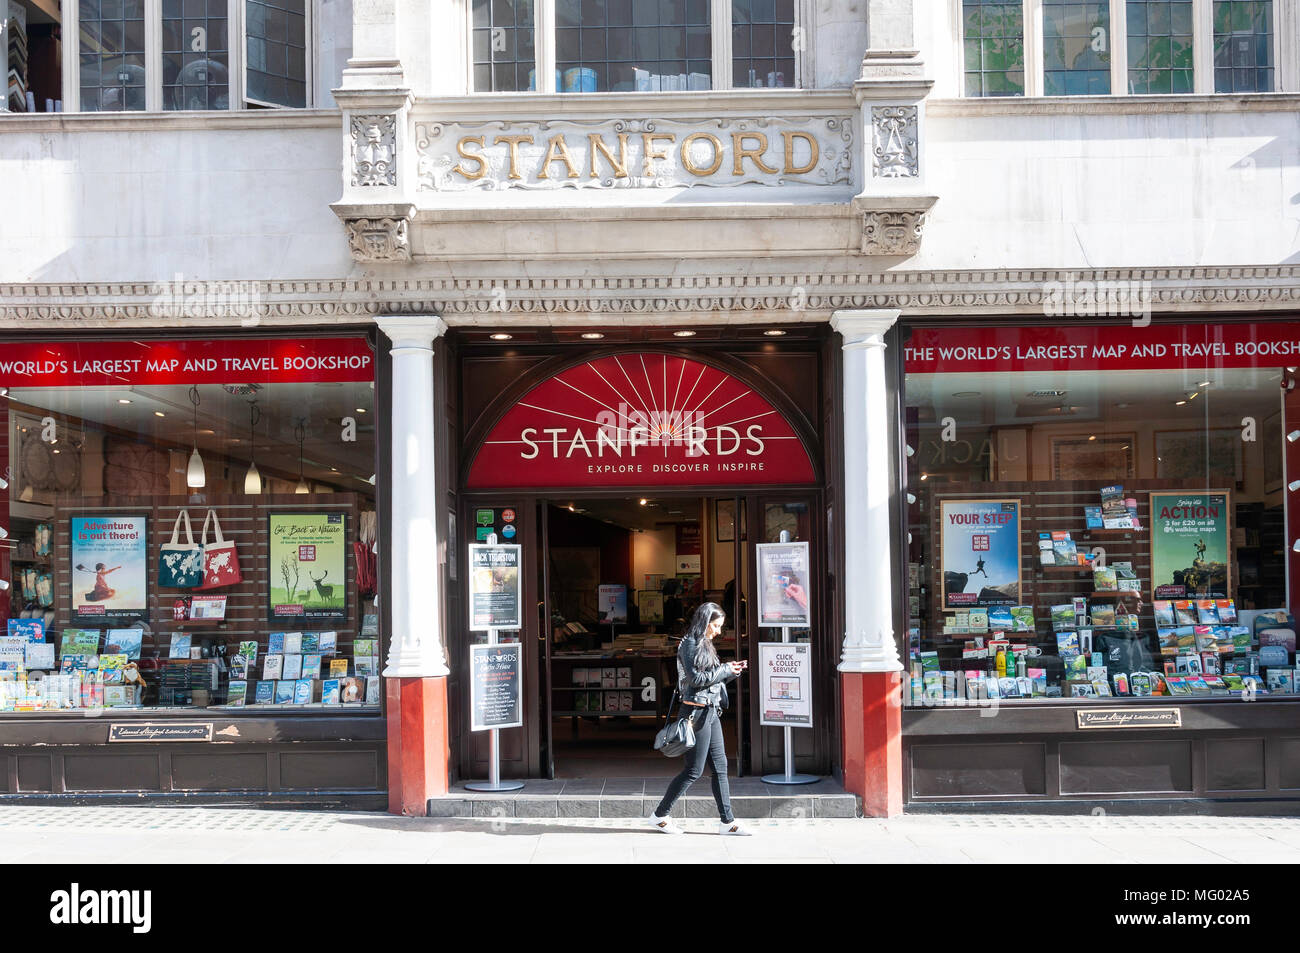 Stanfords Travel Bookshop, Long Acre, Covent Garden, la City of Westminster, Greater London, England, Regno Unito Immagini Stock